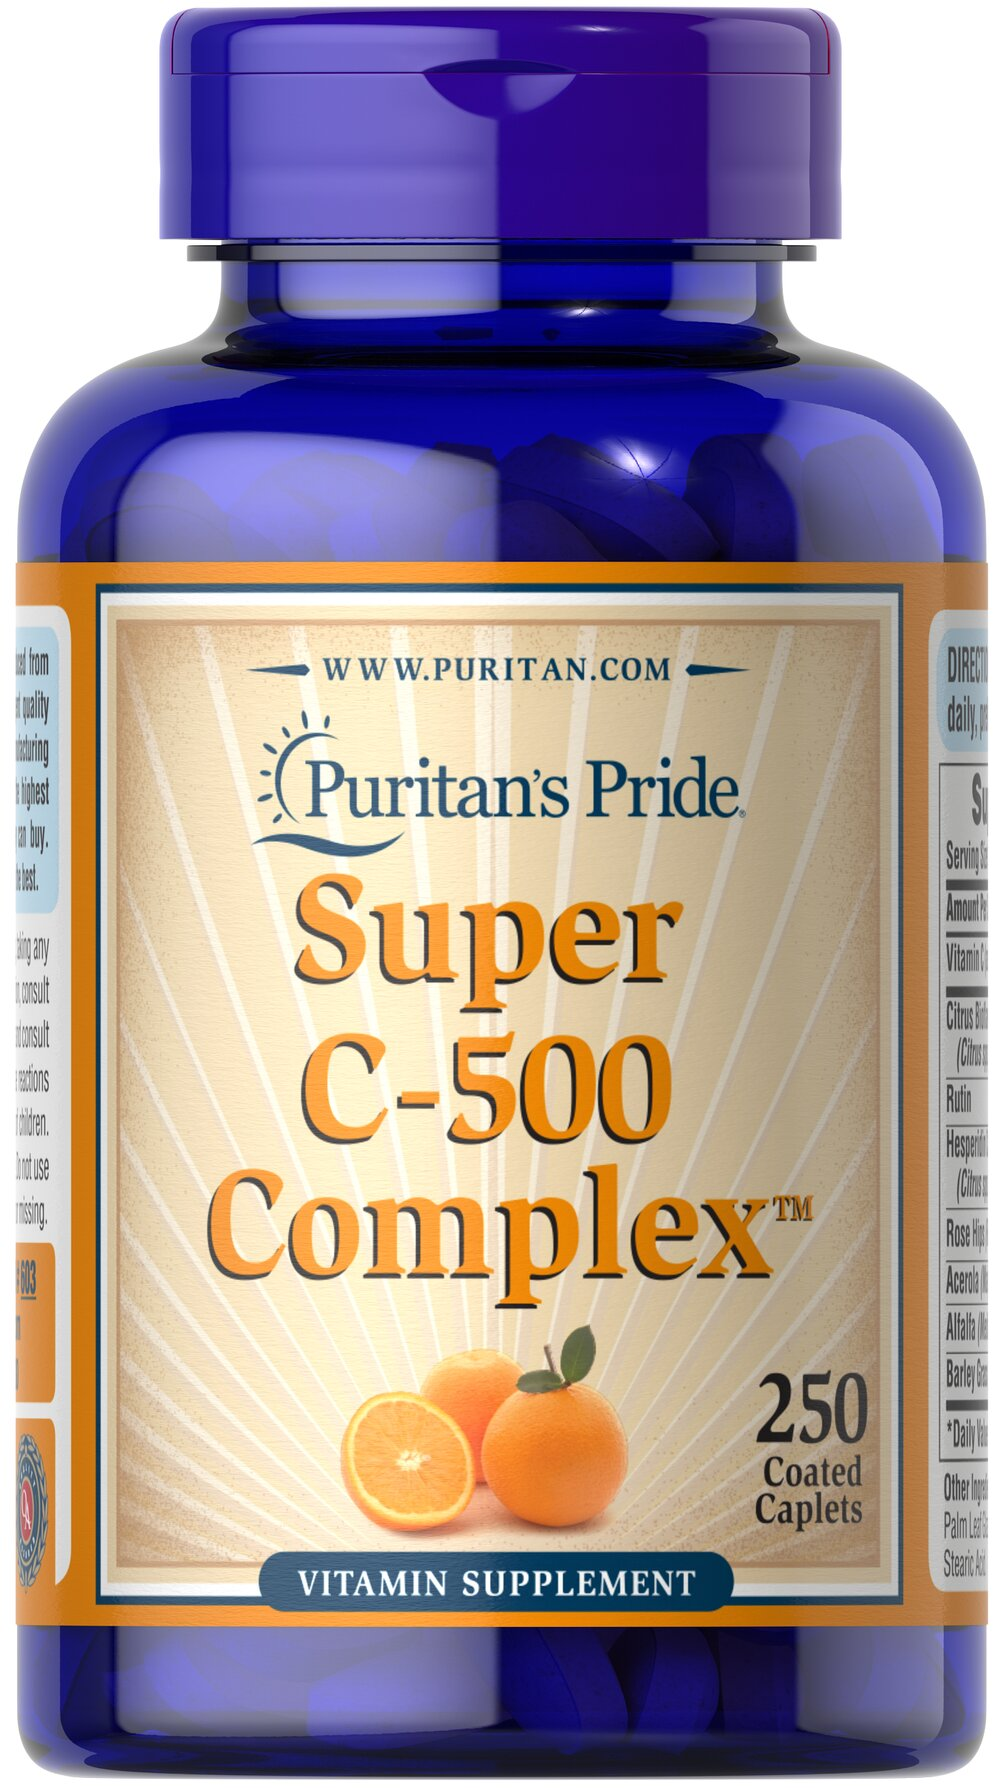 Vitamin C-500 Complex <p>Vitamin C  is essential to many functions in the body and is one of the leading vitamins for immune support.** Our C-complex includes potent Vitamin C as Ascorbic Acid. We also include Citrus Bioflavonoids, Rose Hips, Rutin, and Acerola.**</p><p>Offers superior antioxidant support.**</p><p>Supports healthy immune function and promotes well-being.**</p> 250 Coated Caplets 500 mg $17.49